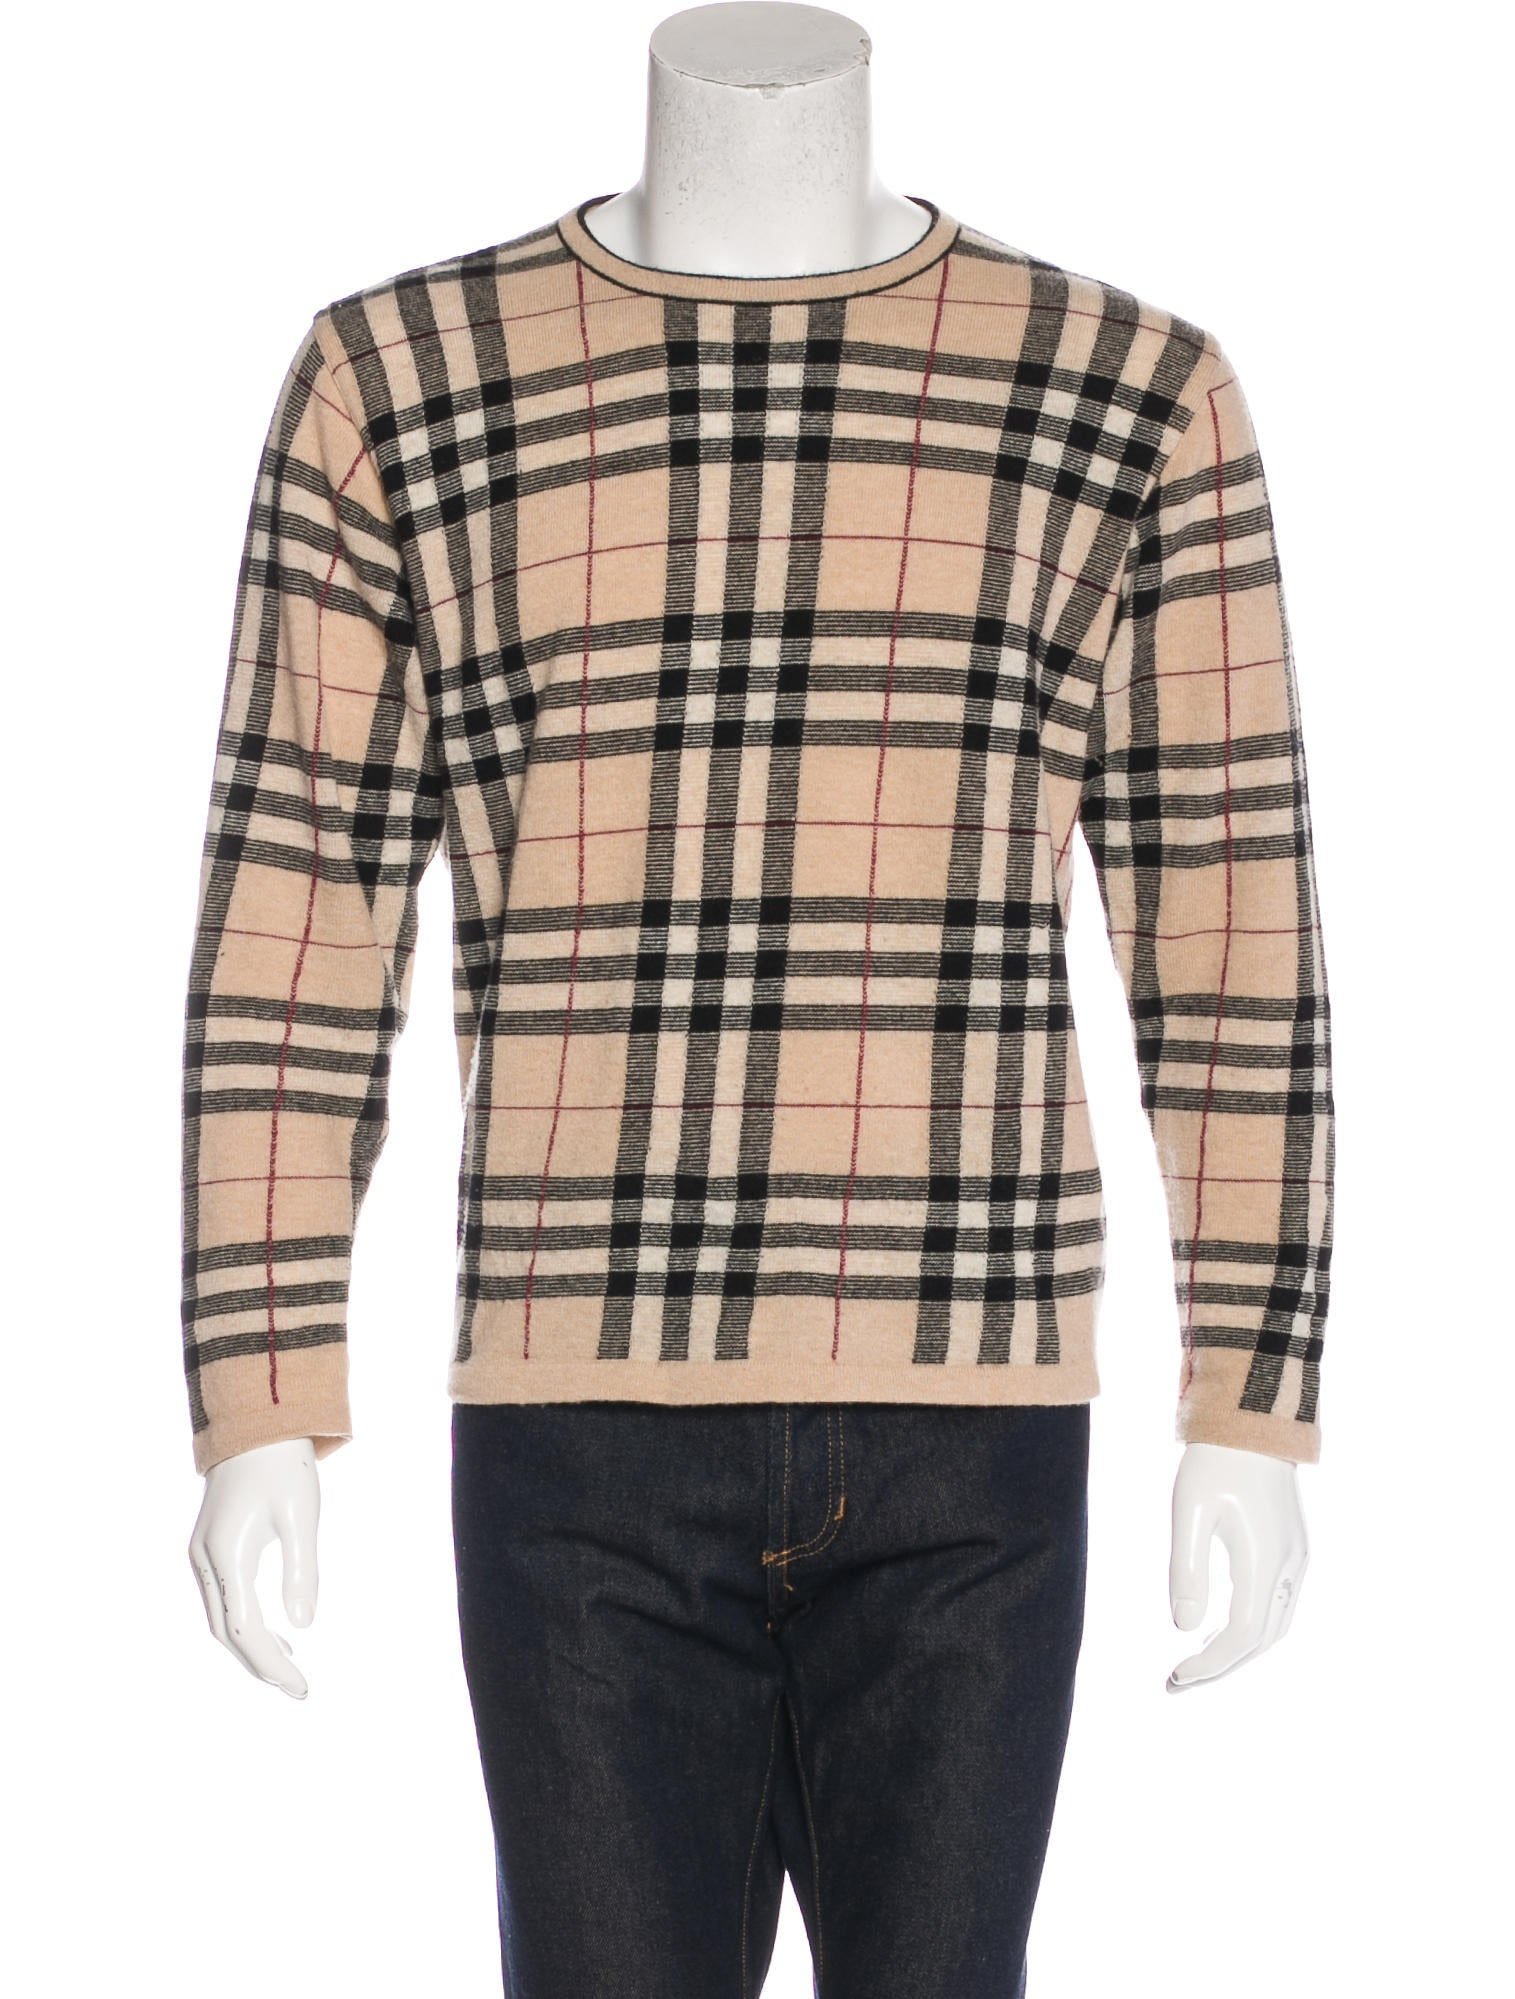 Burberry London Nova Check Wool Sweater Clothing  : WBURL262321enlarged from www.therealreal.com size 1515 x 1999 jpeg 332kB